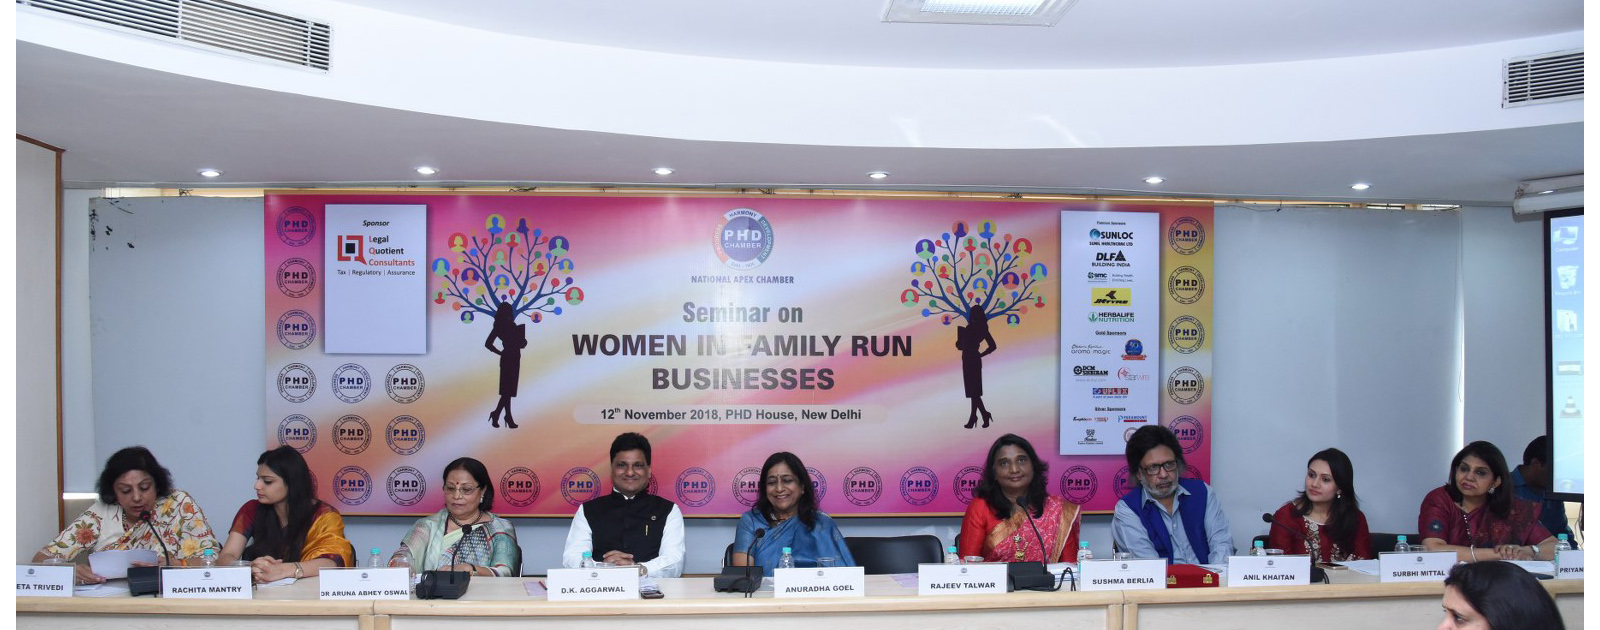 Seminar on Women in Family Run Businesses